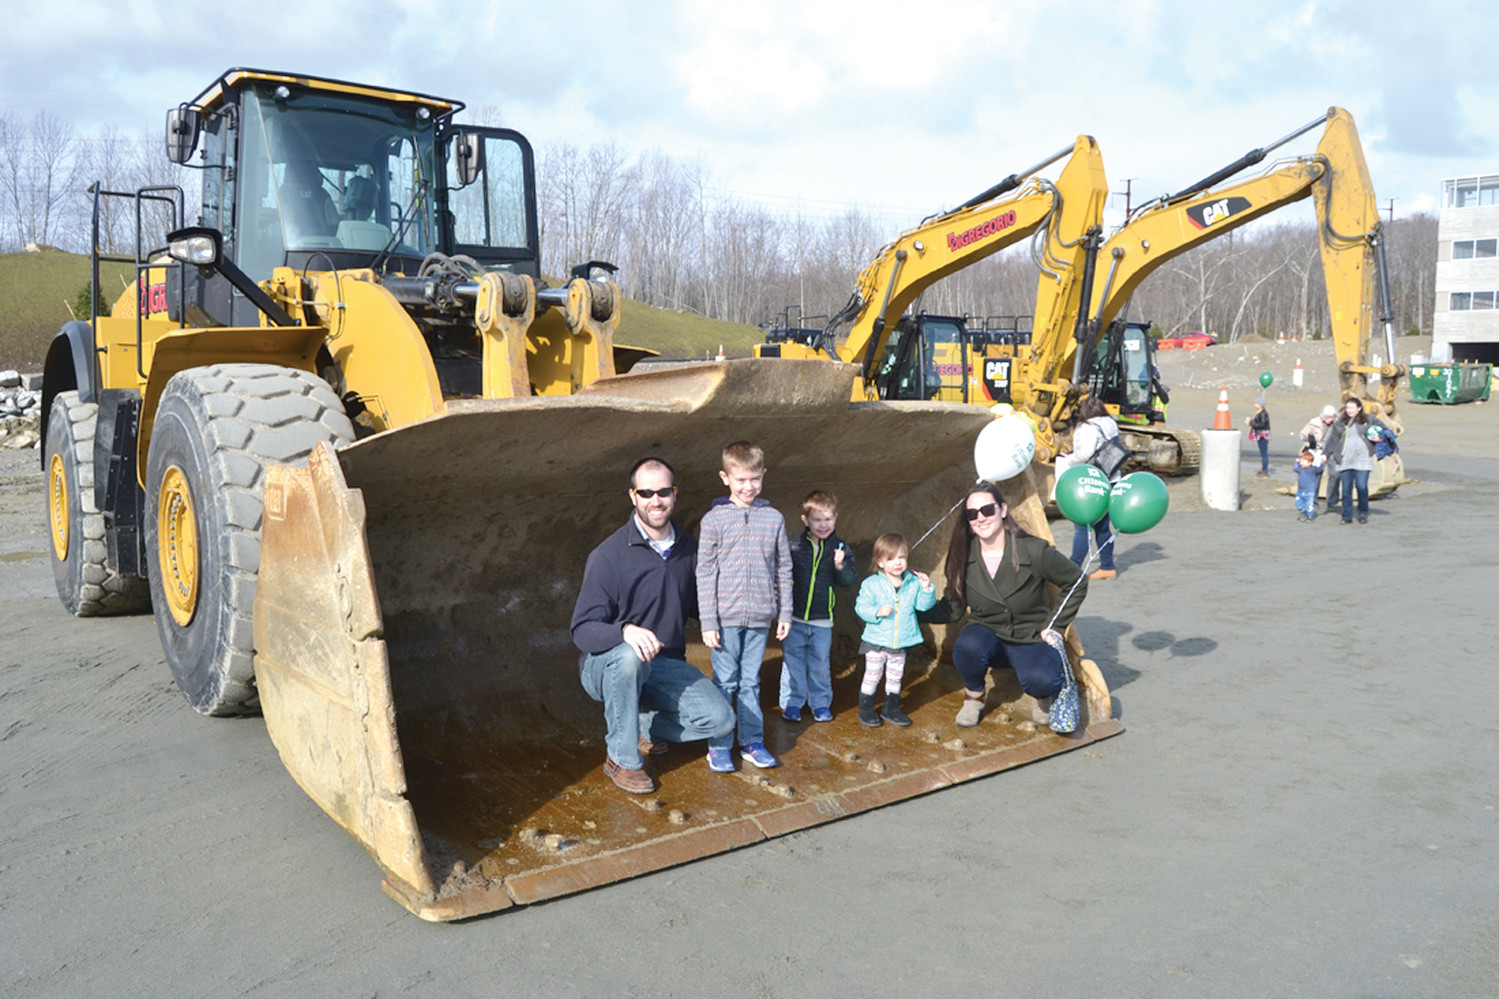 TOUCH A TRUCK: The Shields family of Warwick decided to take a tour of the Citizens Campus to see where their dad would work. They were thrilled with what they saw, including a touch a truck event.